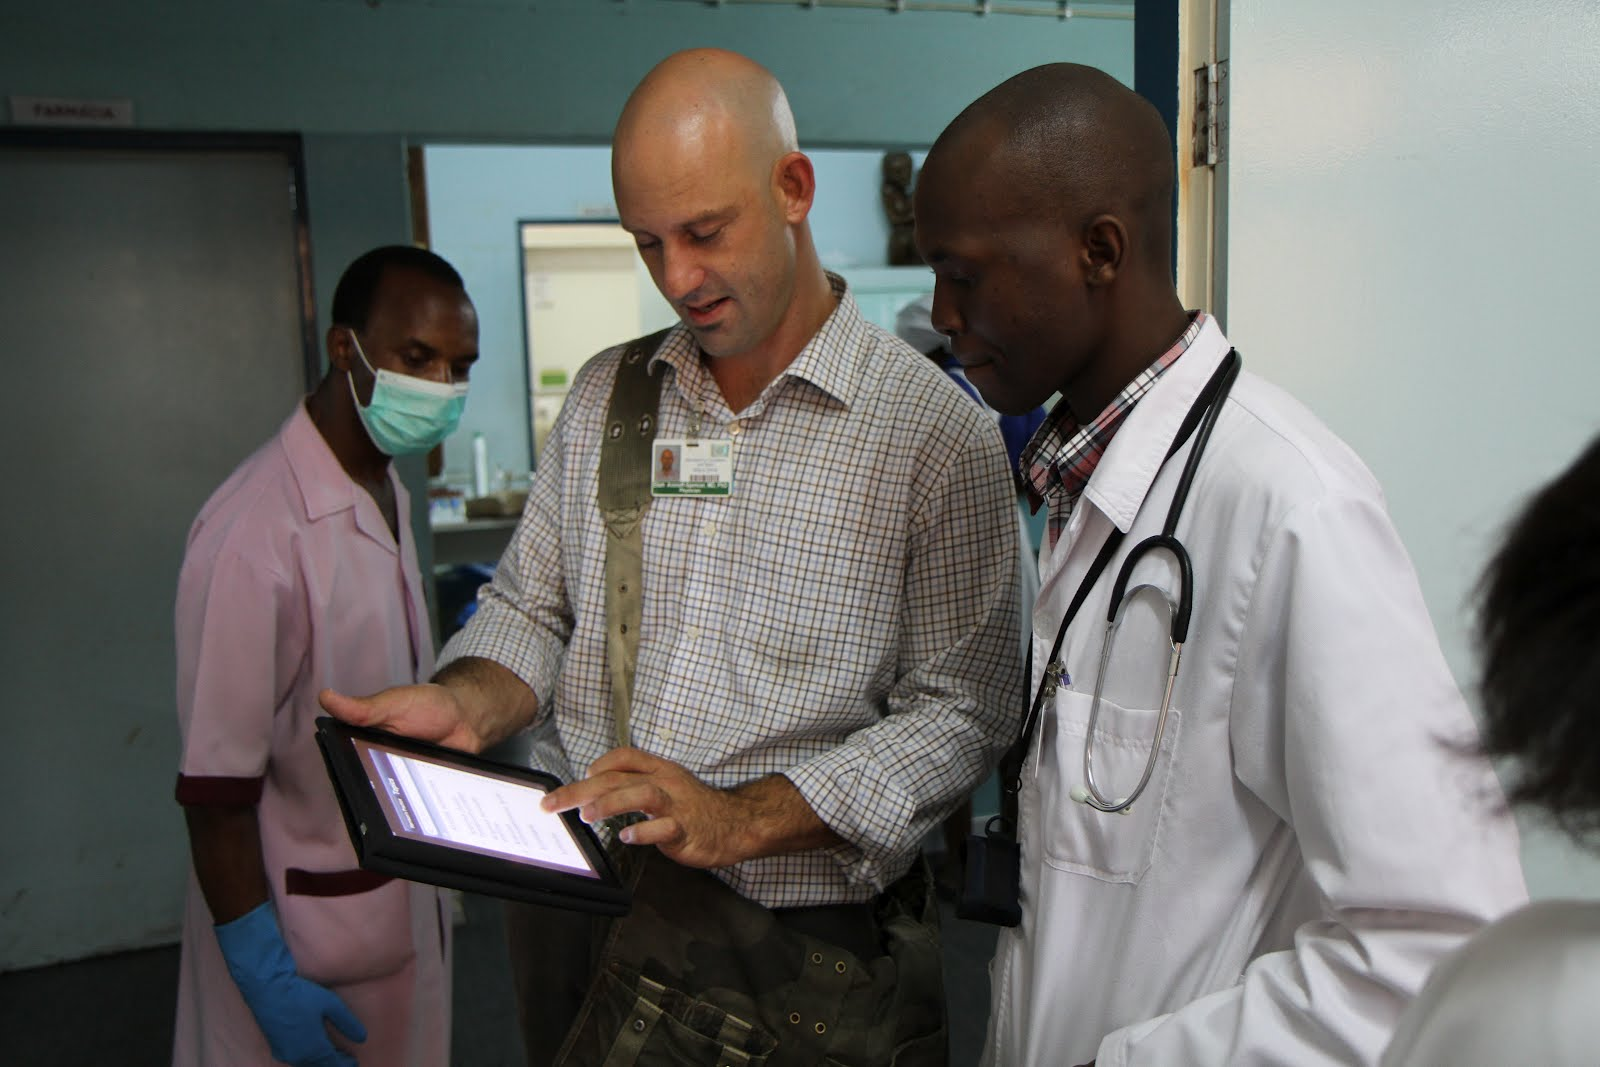 Dr. Eliah Aronoff-Spencer discusses new DH Lab-developed technologies with a doctor at Mozambique's Universidade Eduardo Mondlane